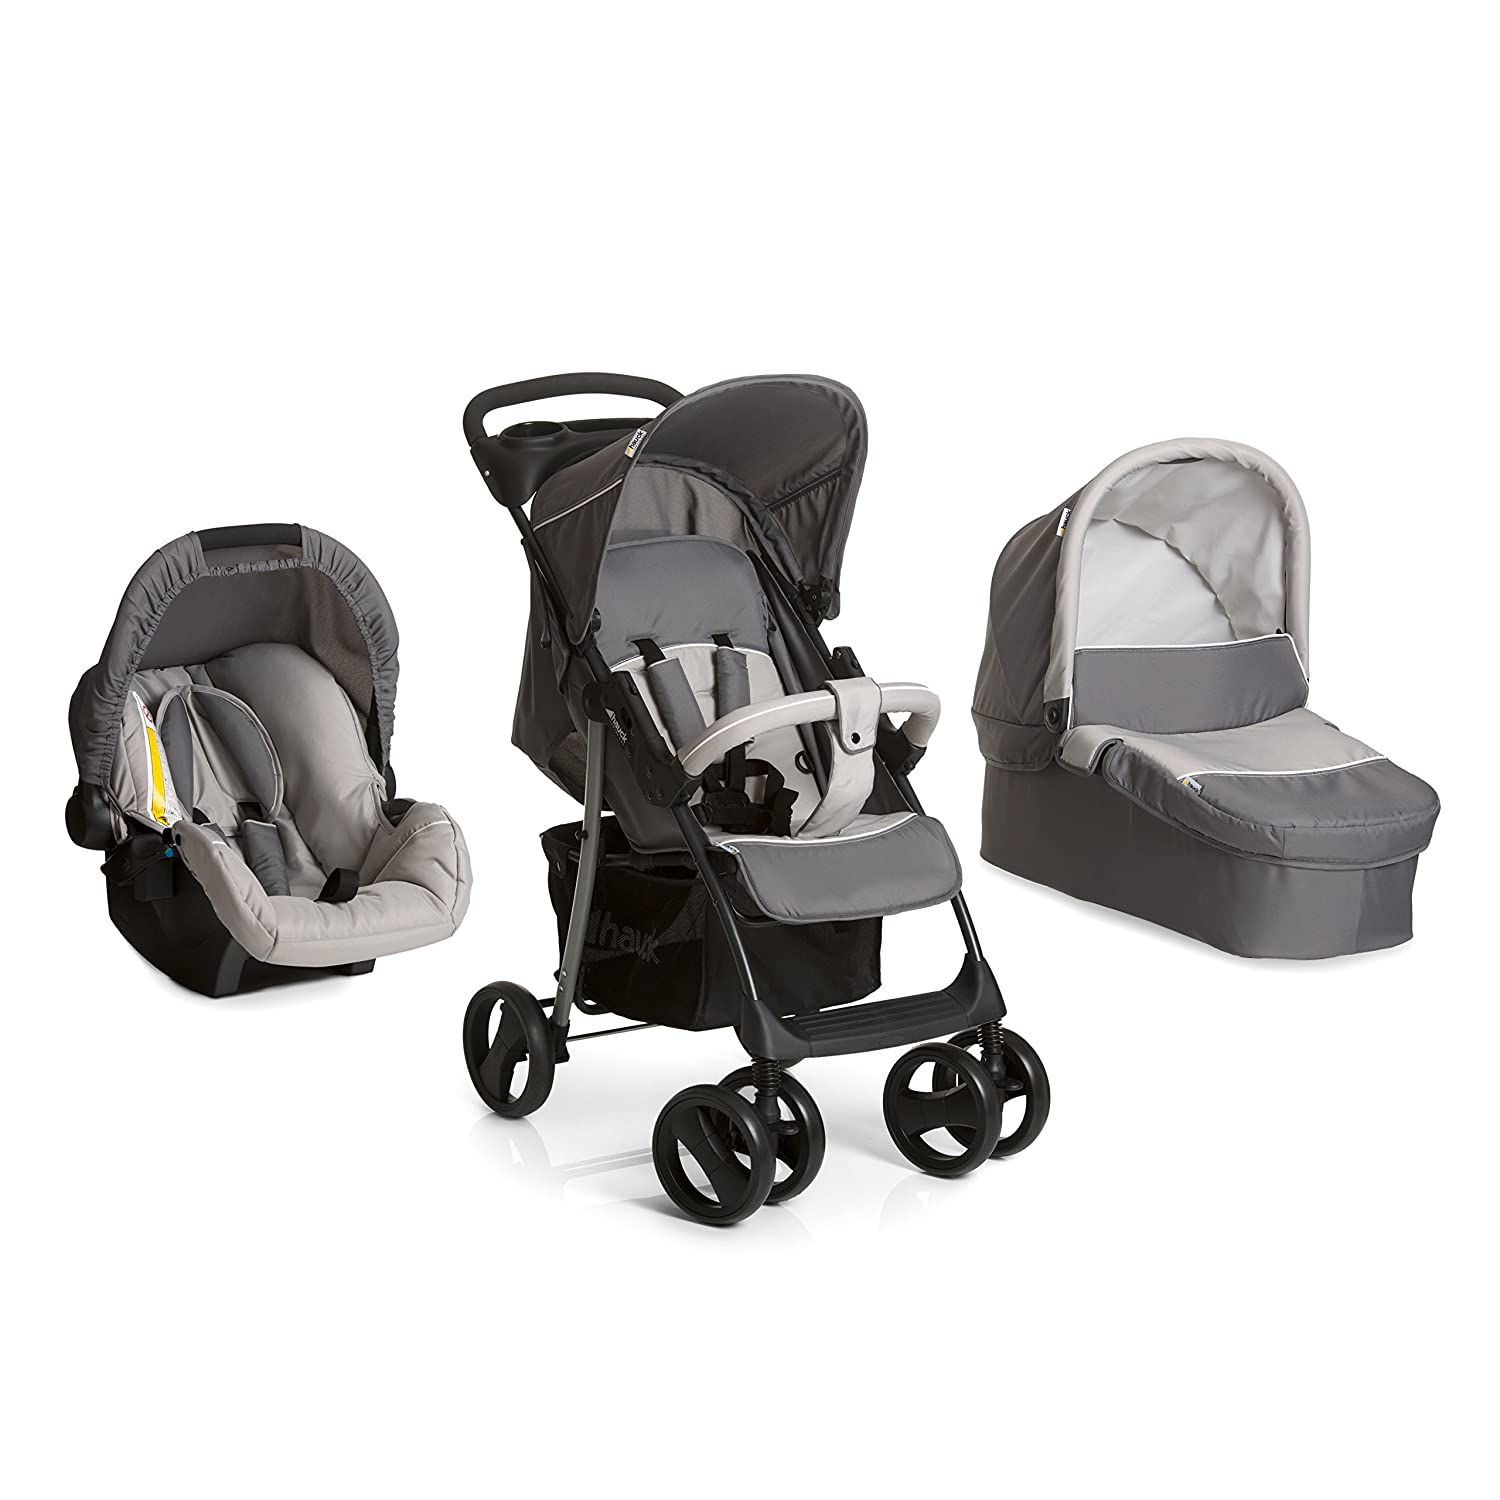 Hauck Shopper SLX Trio Set